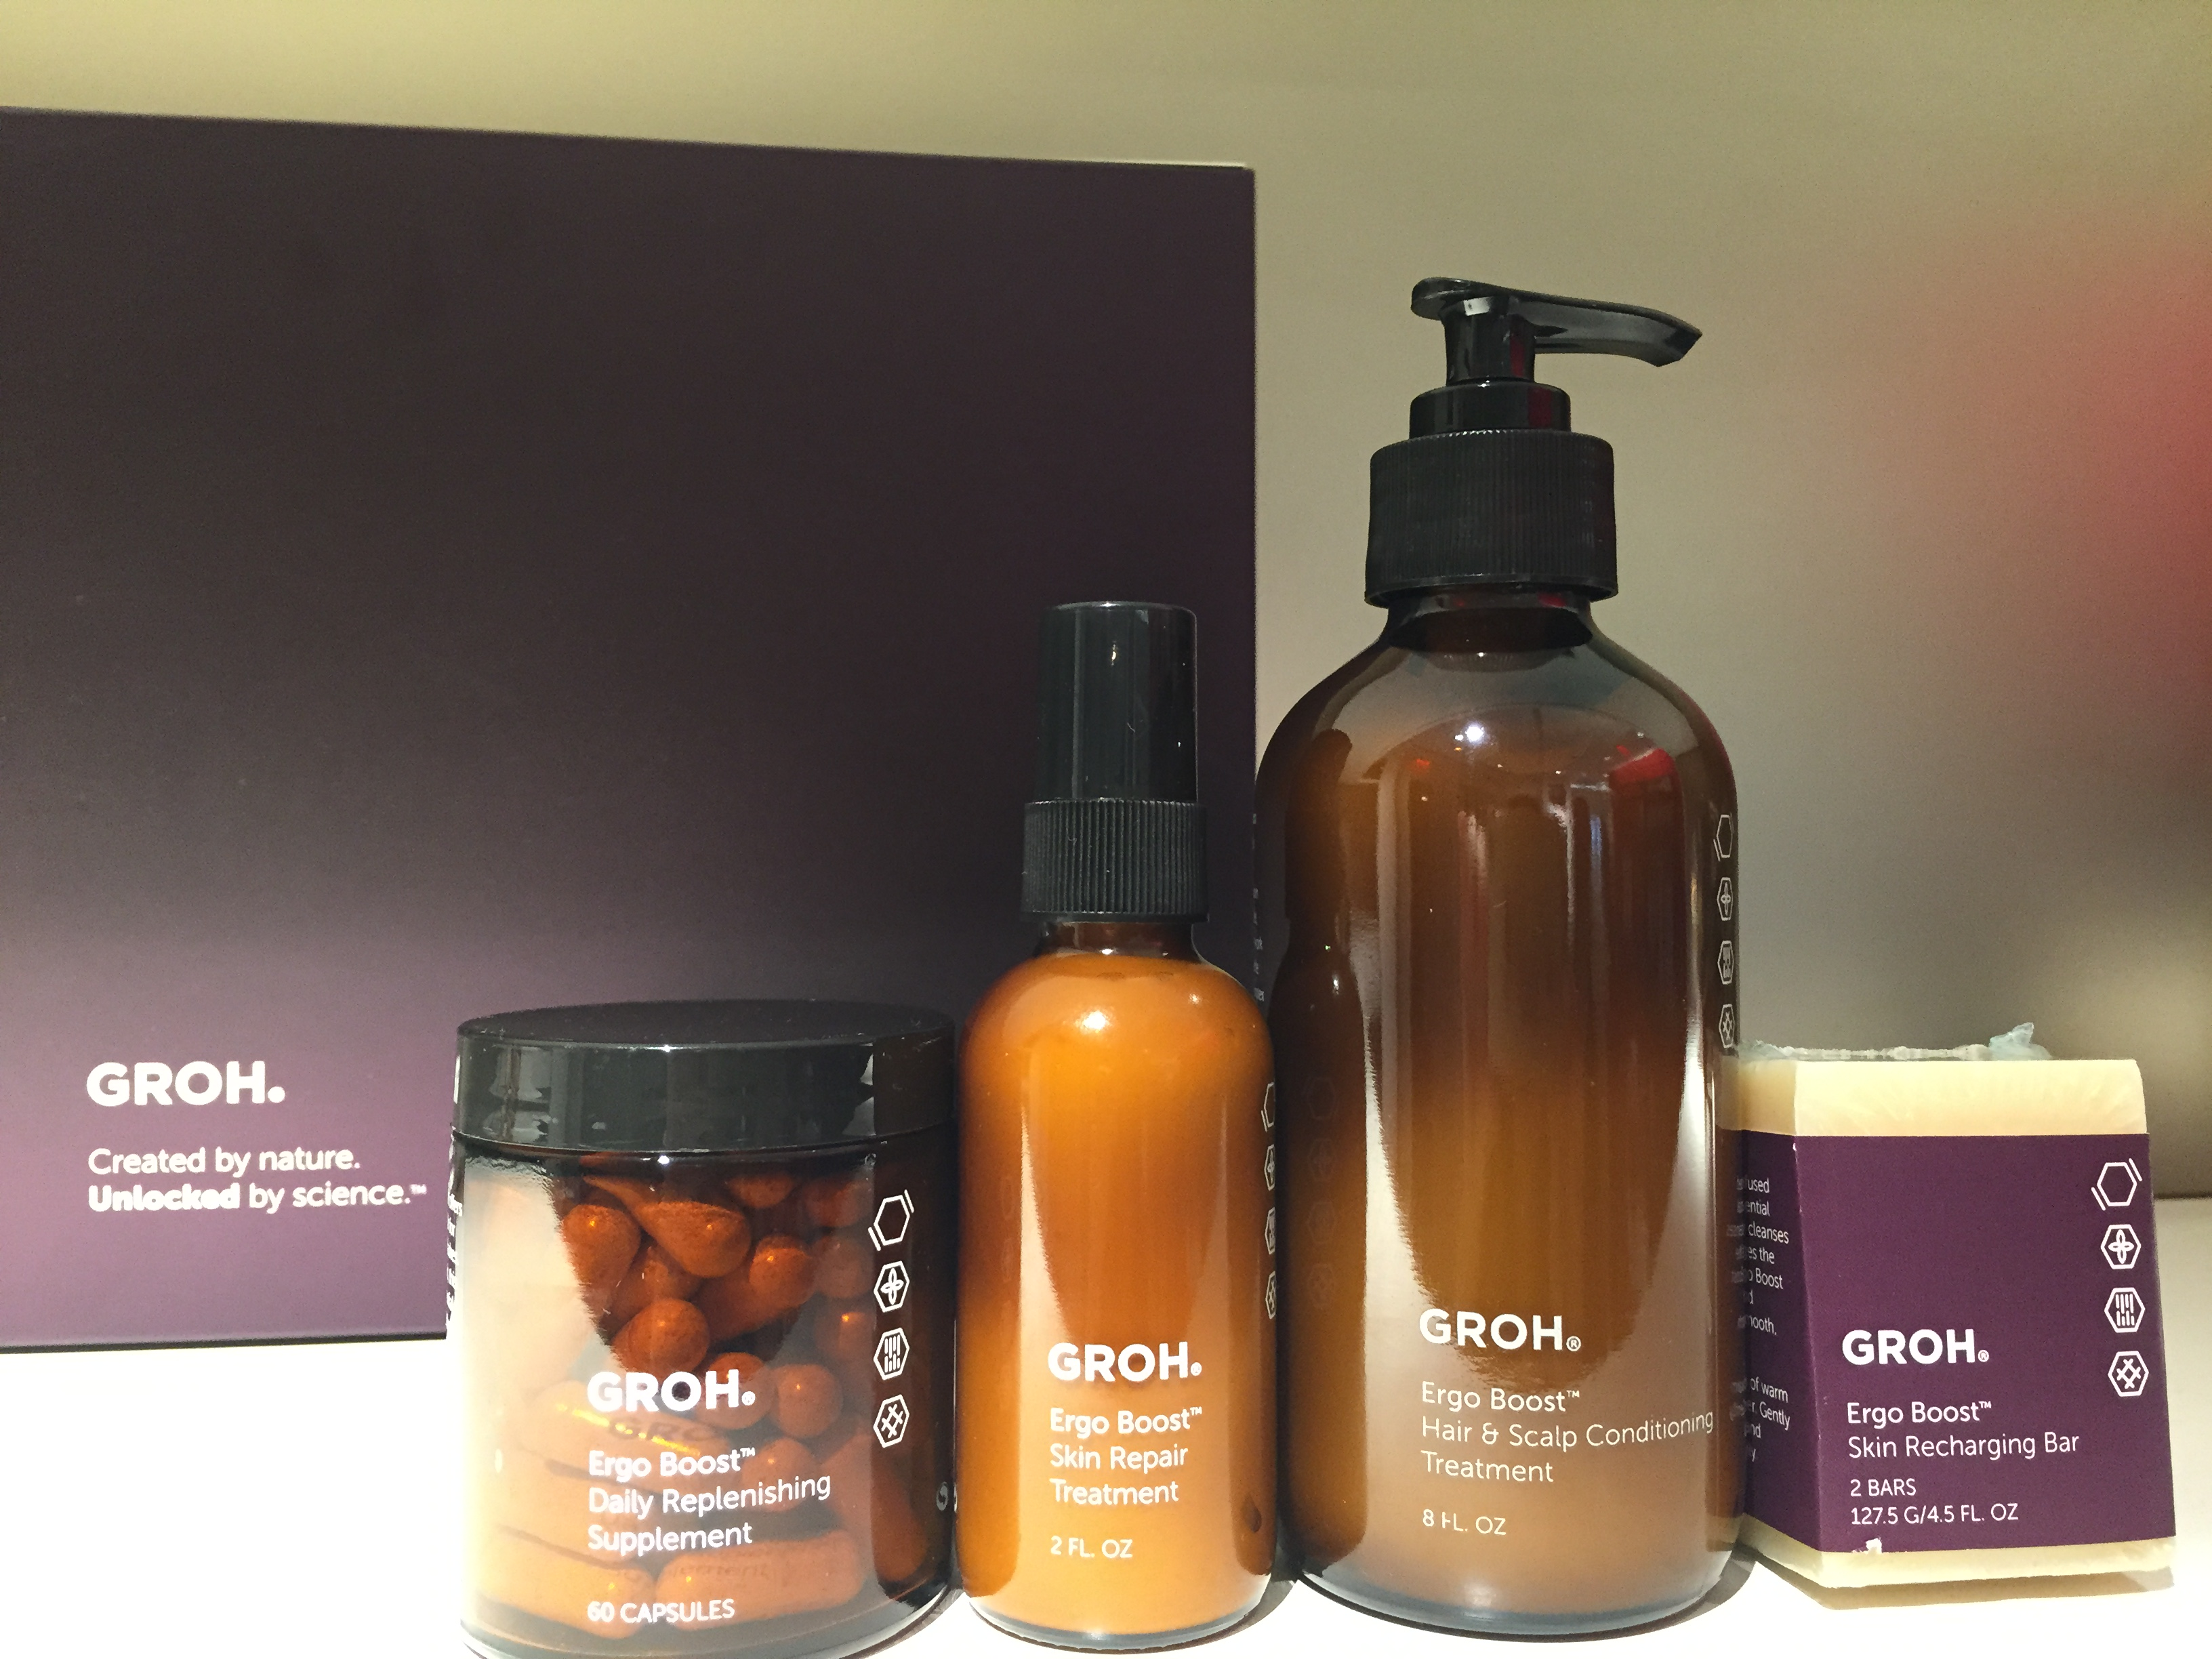 Press Launch: Organic, Anti-Aging Beauty Brand GROH